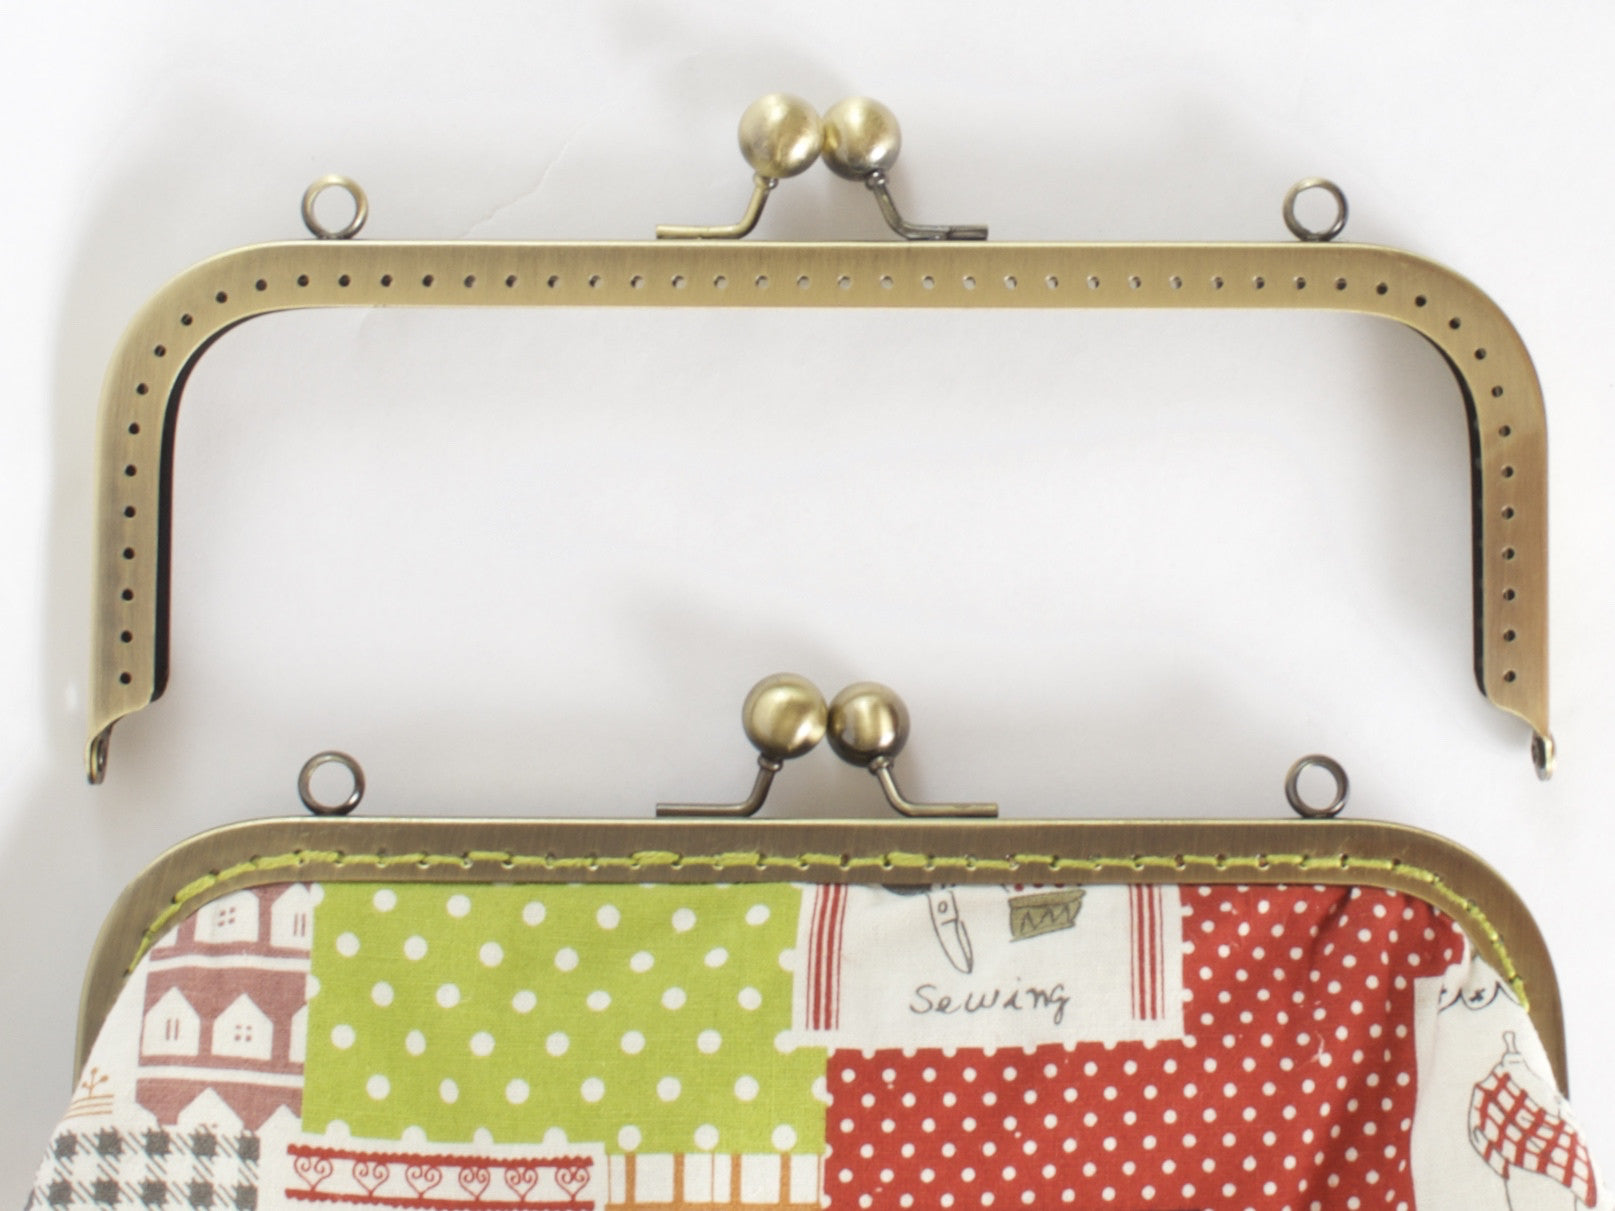 Bk2162 Clasp Purse Frame Amp Pattern A Threaded Needle